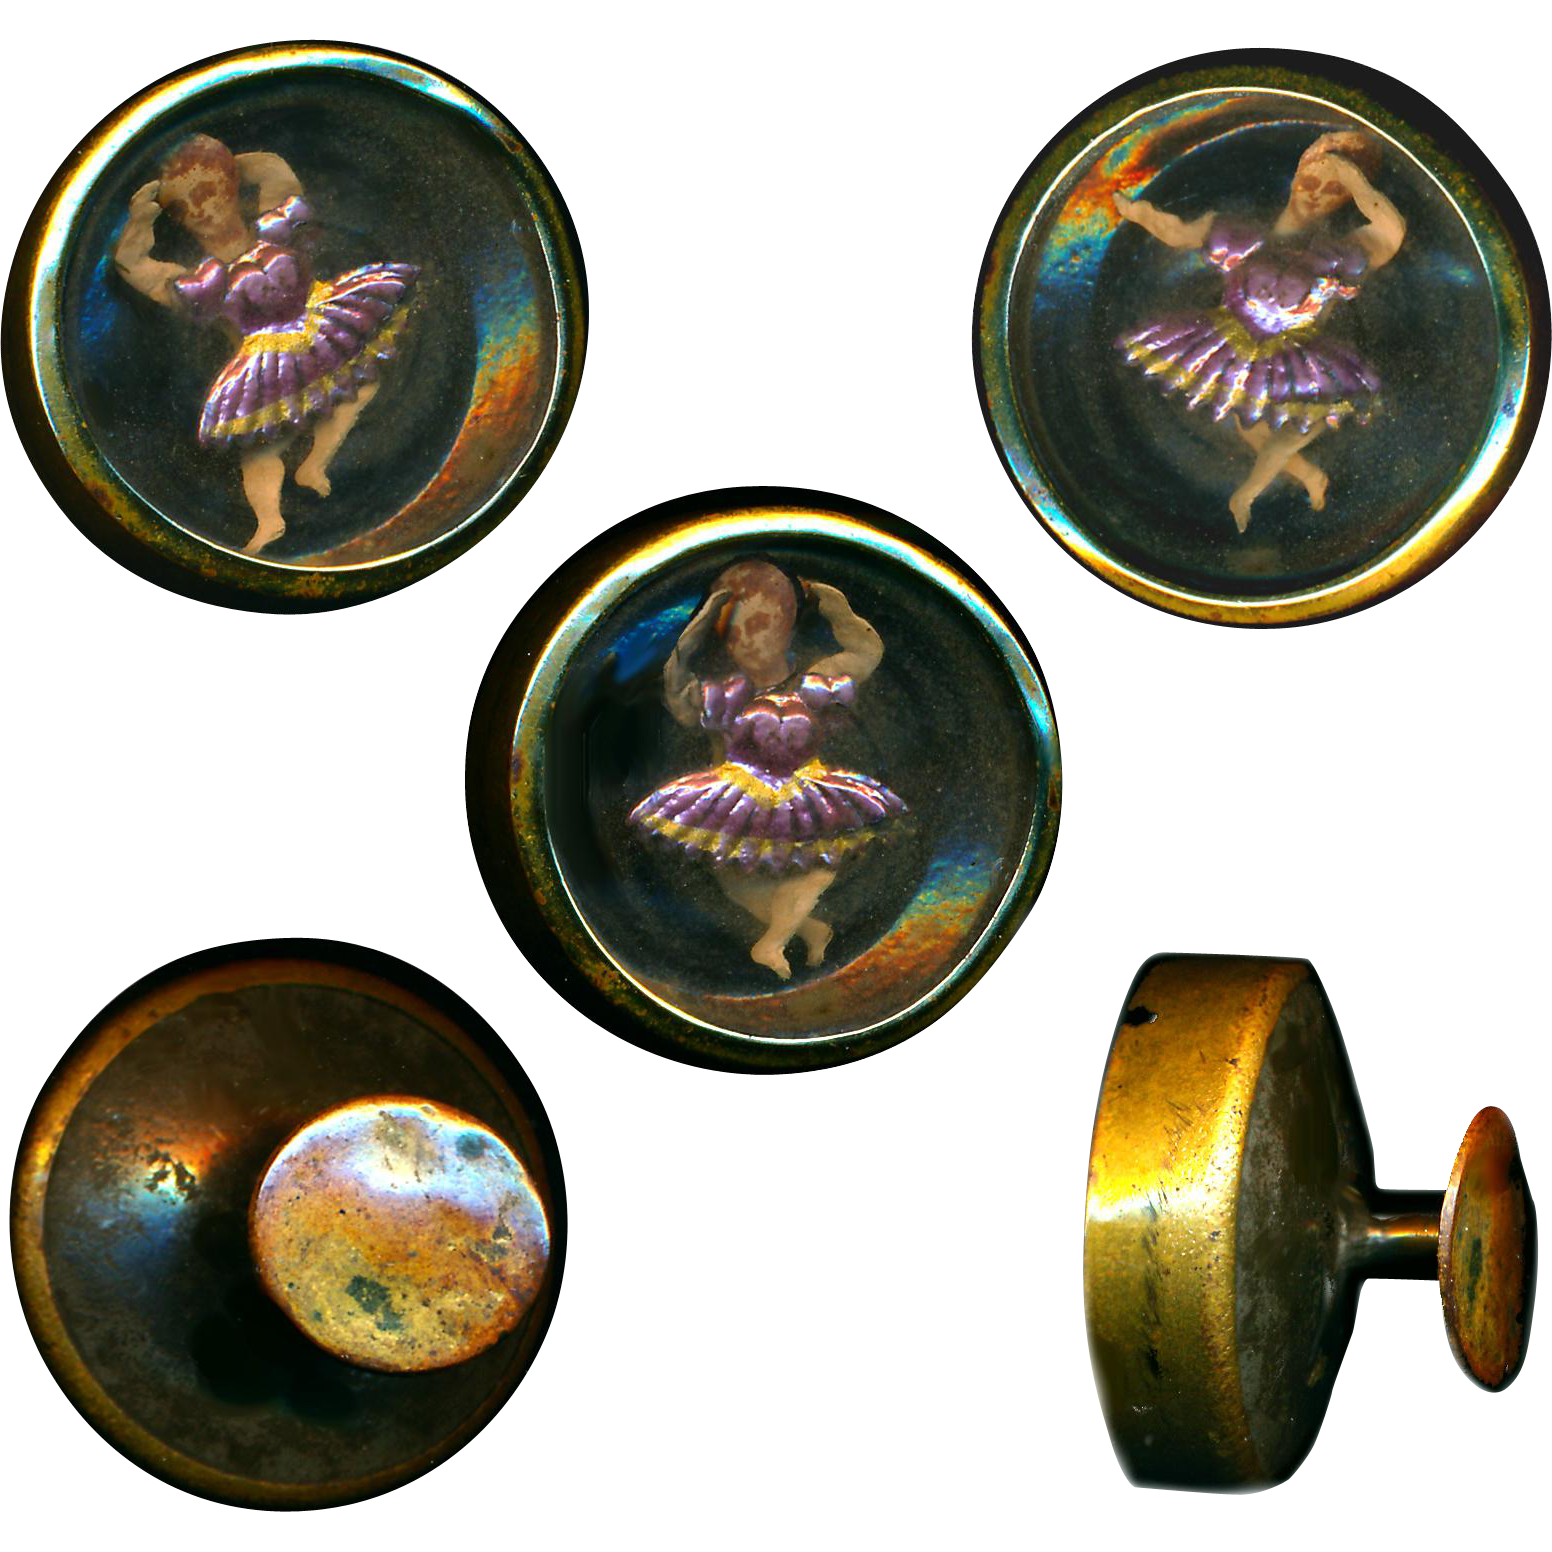 Stud--Mid-19th C. Novelty Cuff Button Dancing Girl in Pink Foil Under Glass